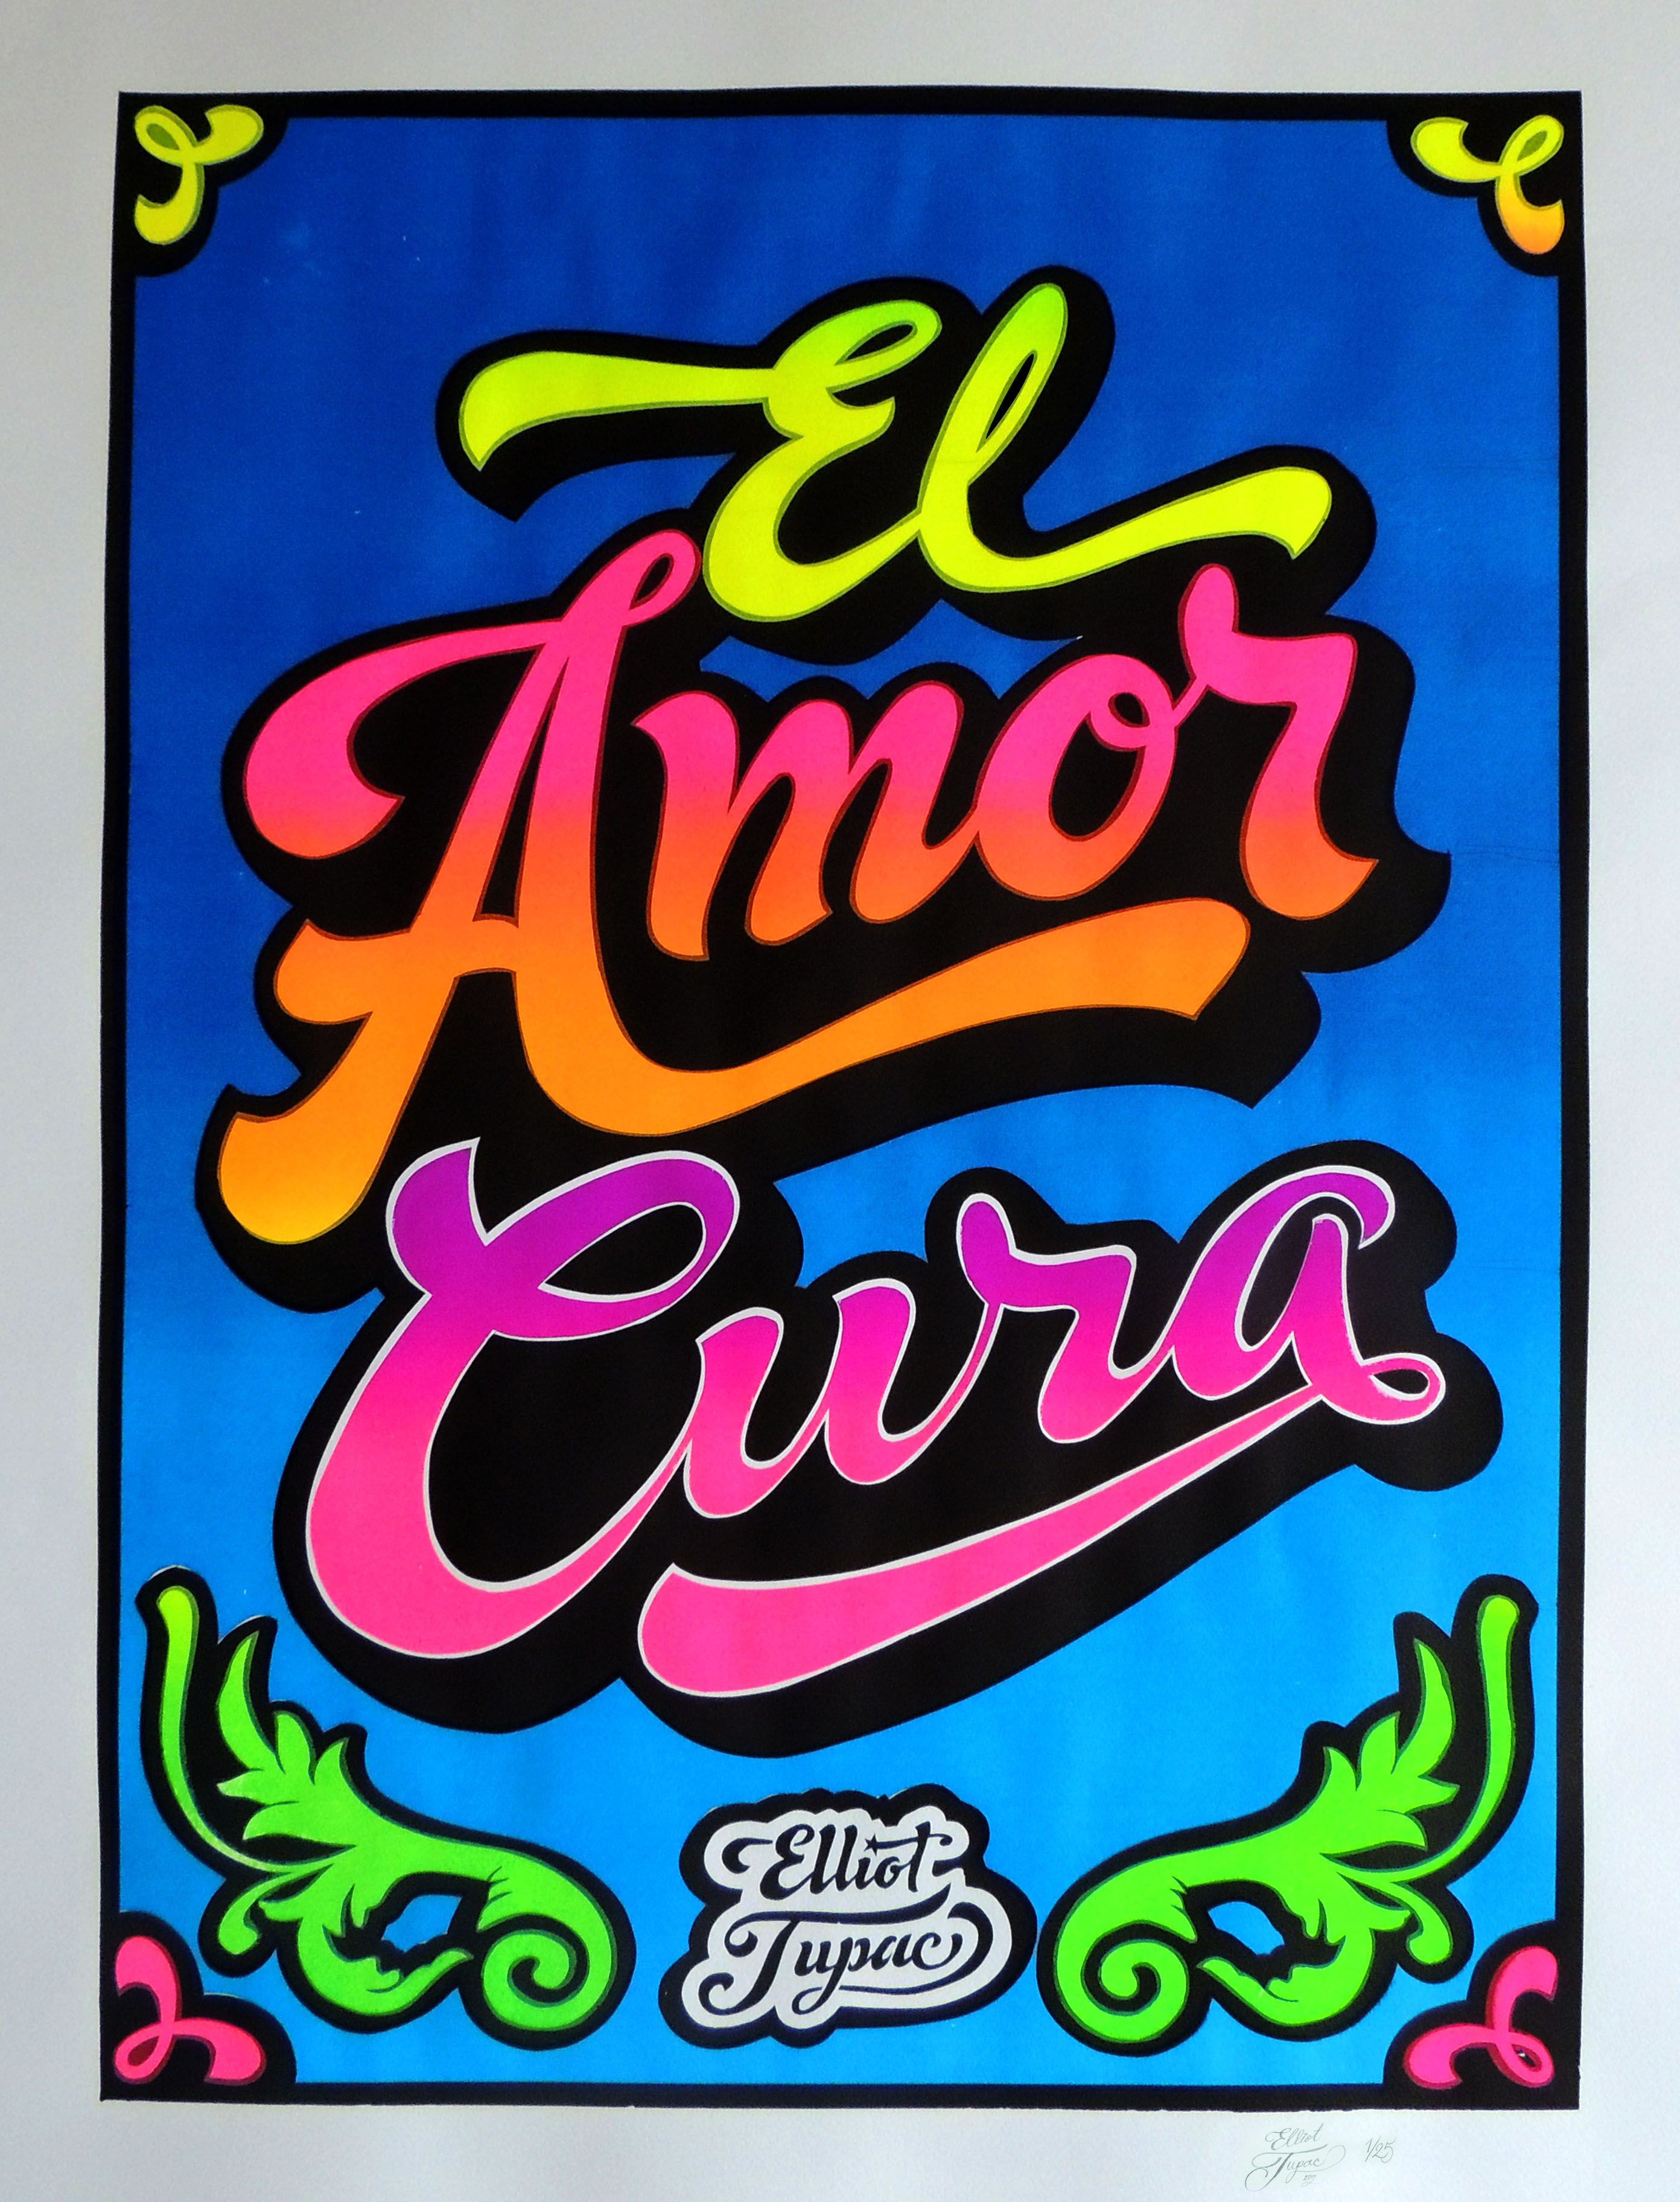 Exceptionnel El Amor Cura | Typo, Personal logo and Typography JQ12